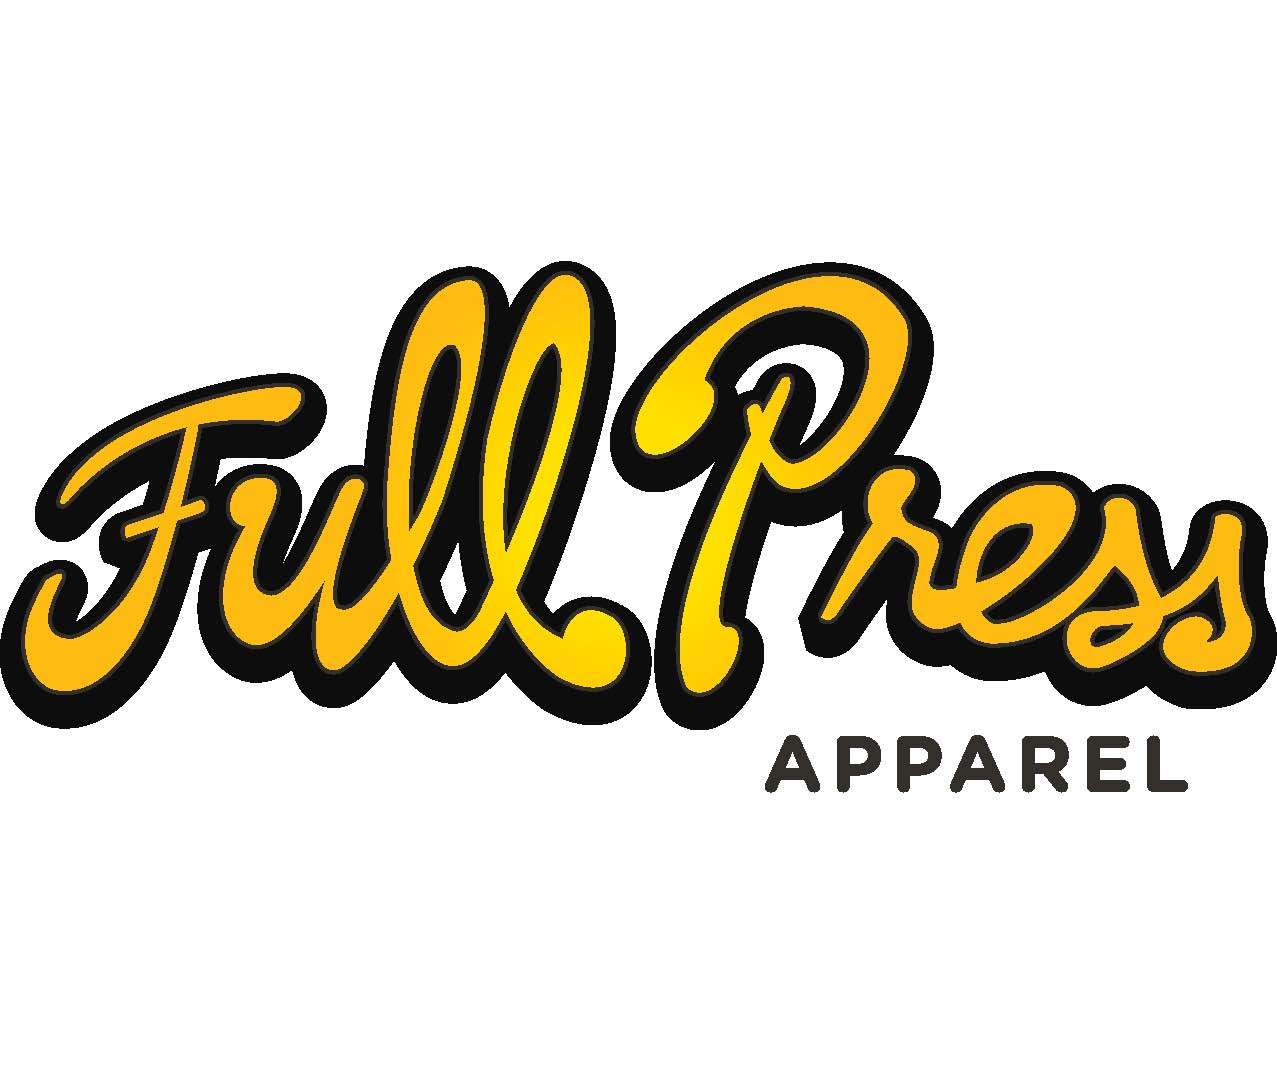 Full Press Apparel